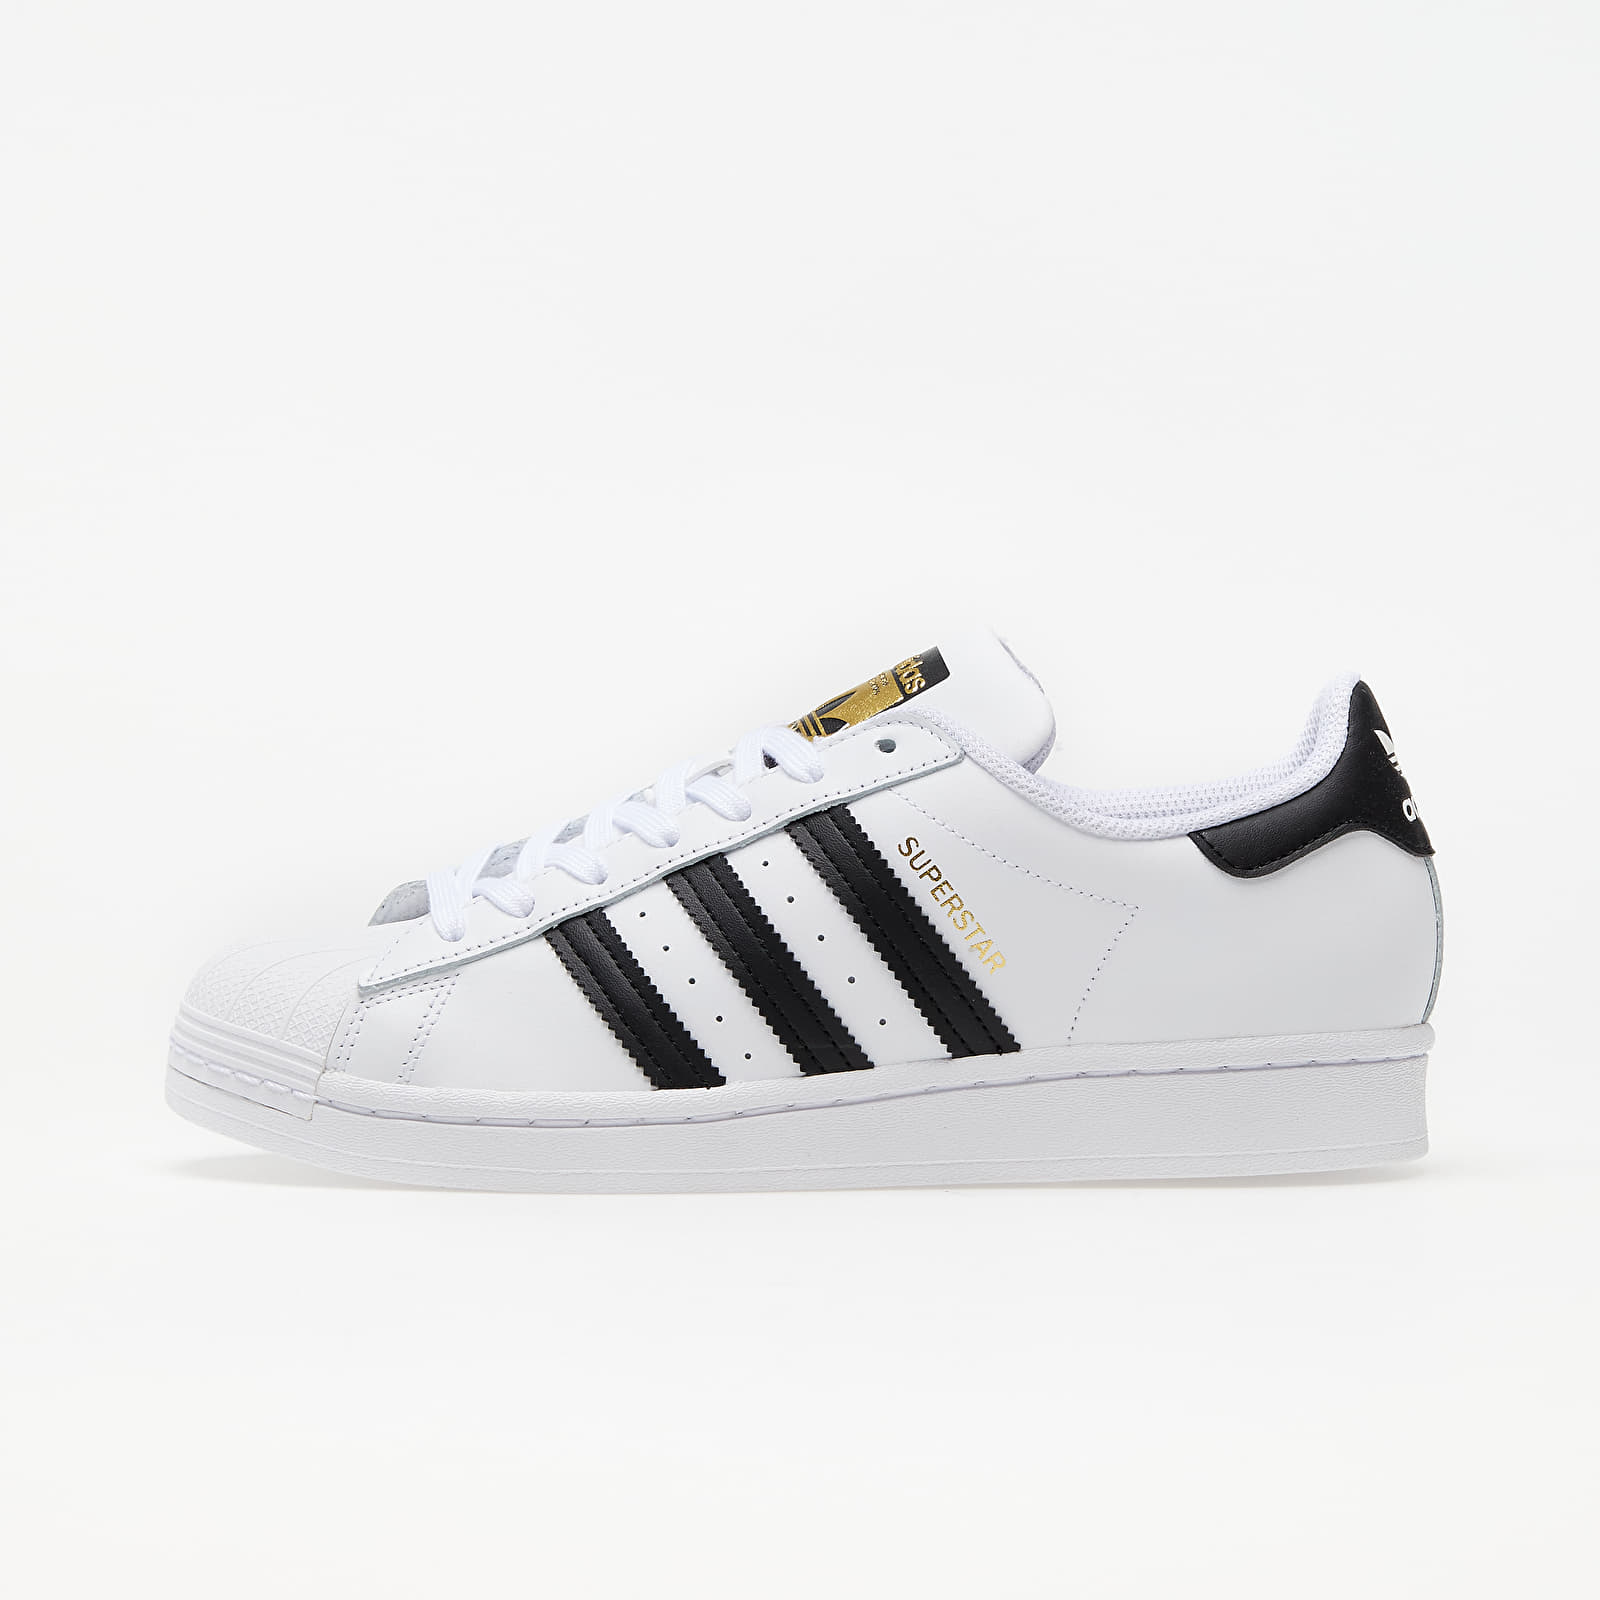 adidas Superstar Ftw White/ Core Black/ Ftw White EUR 38